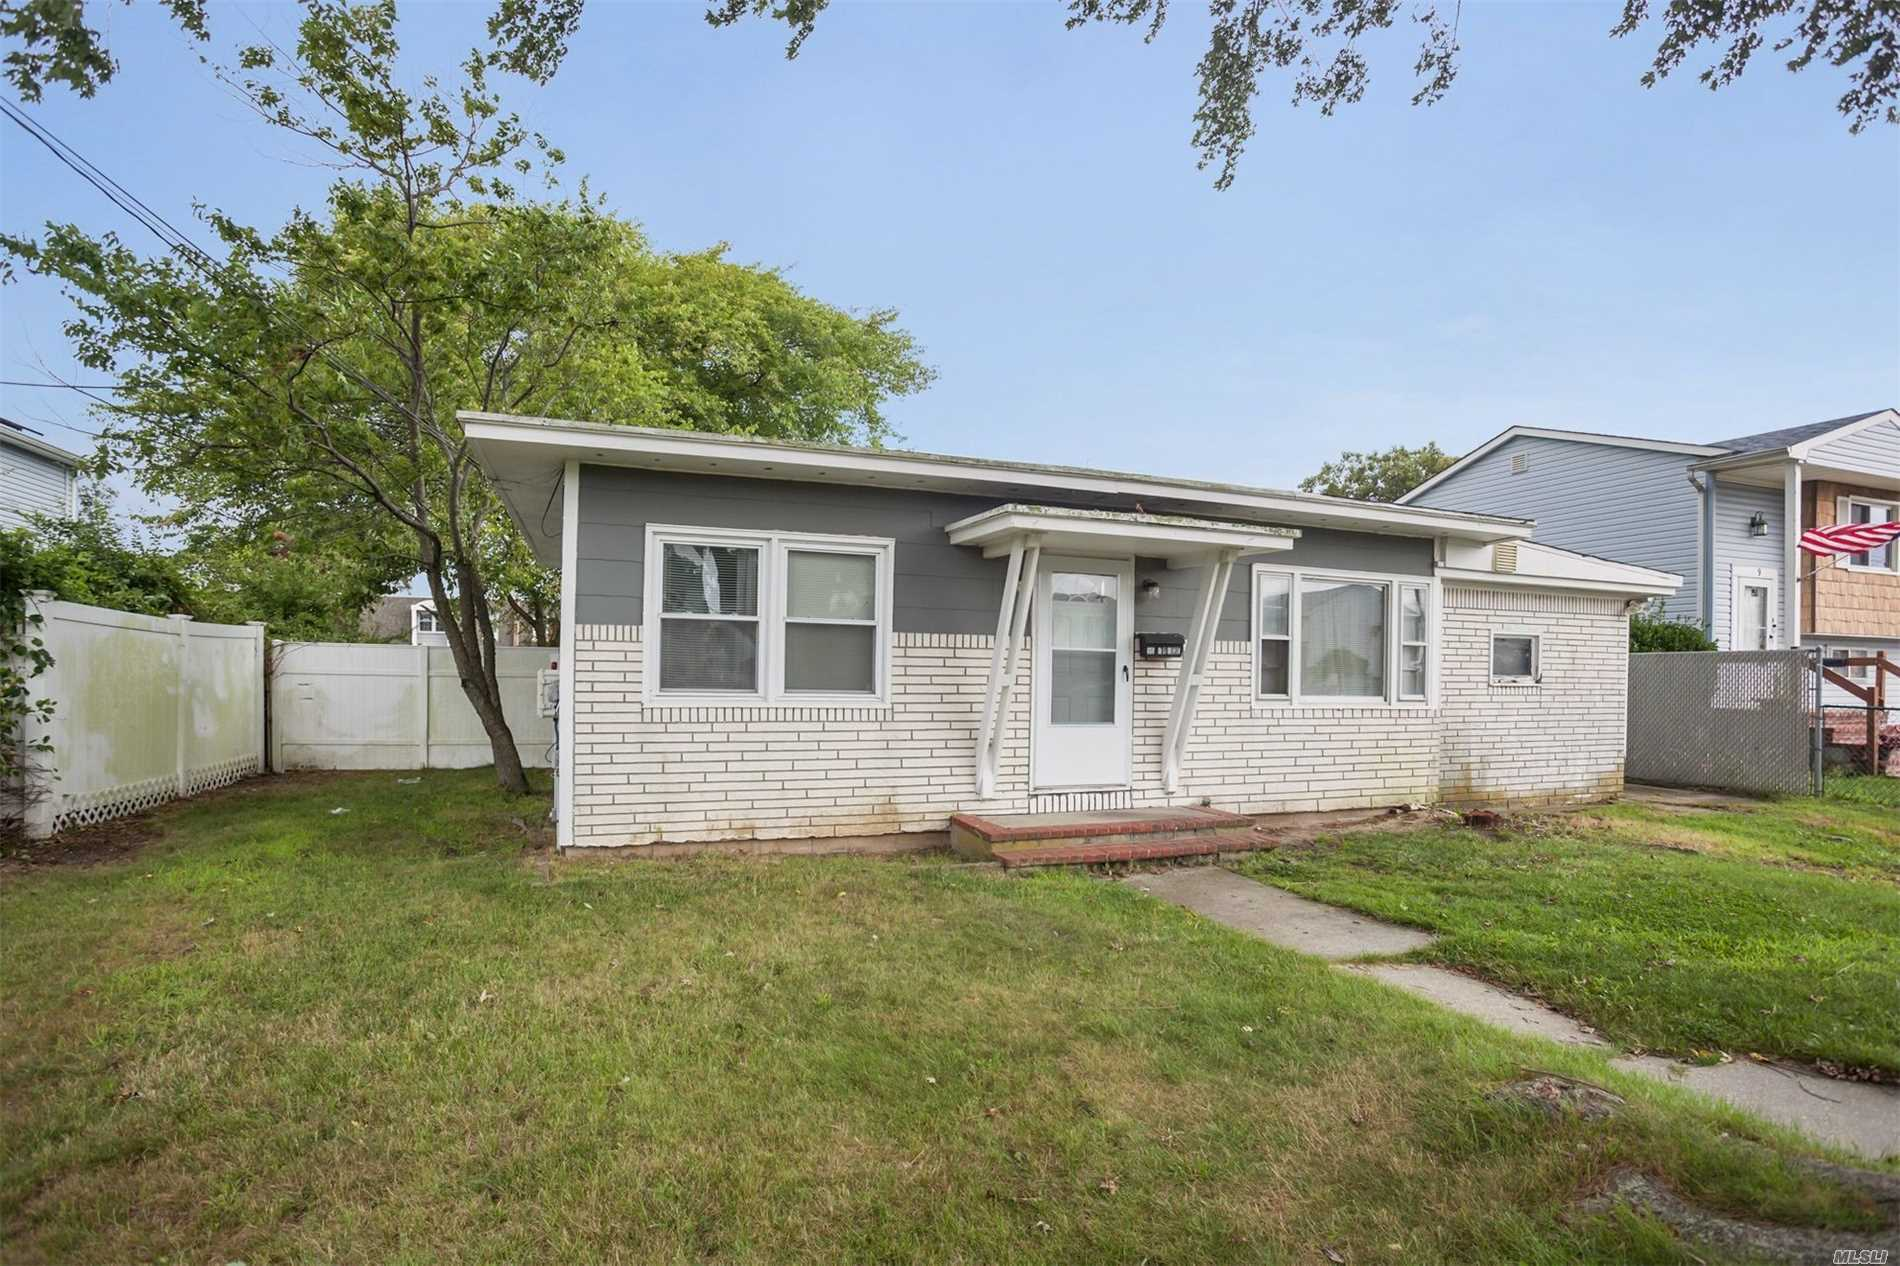 55 Price St - Patchogue, New York